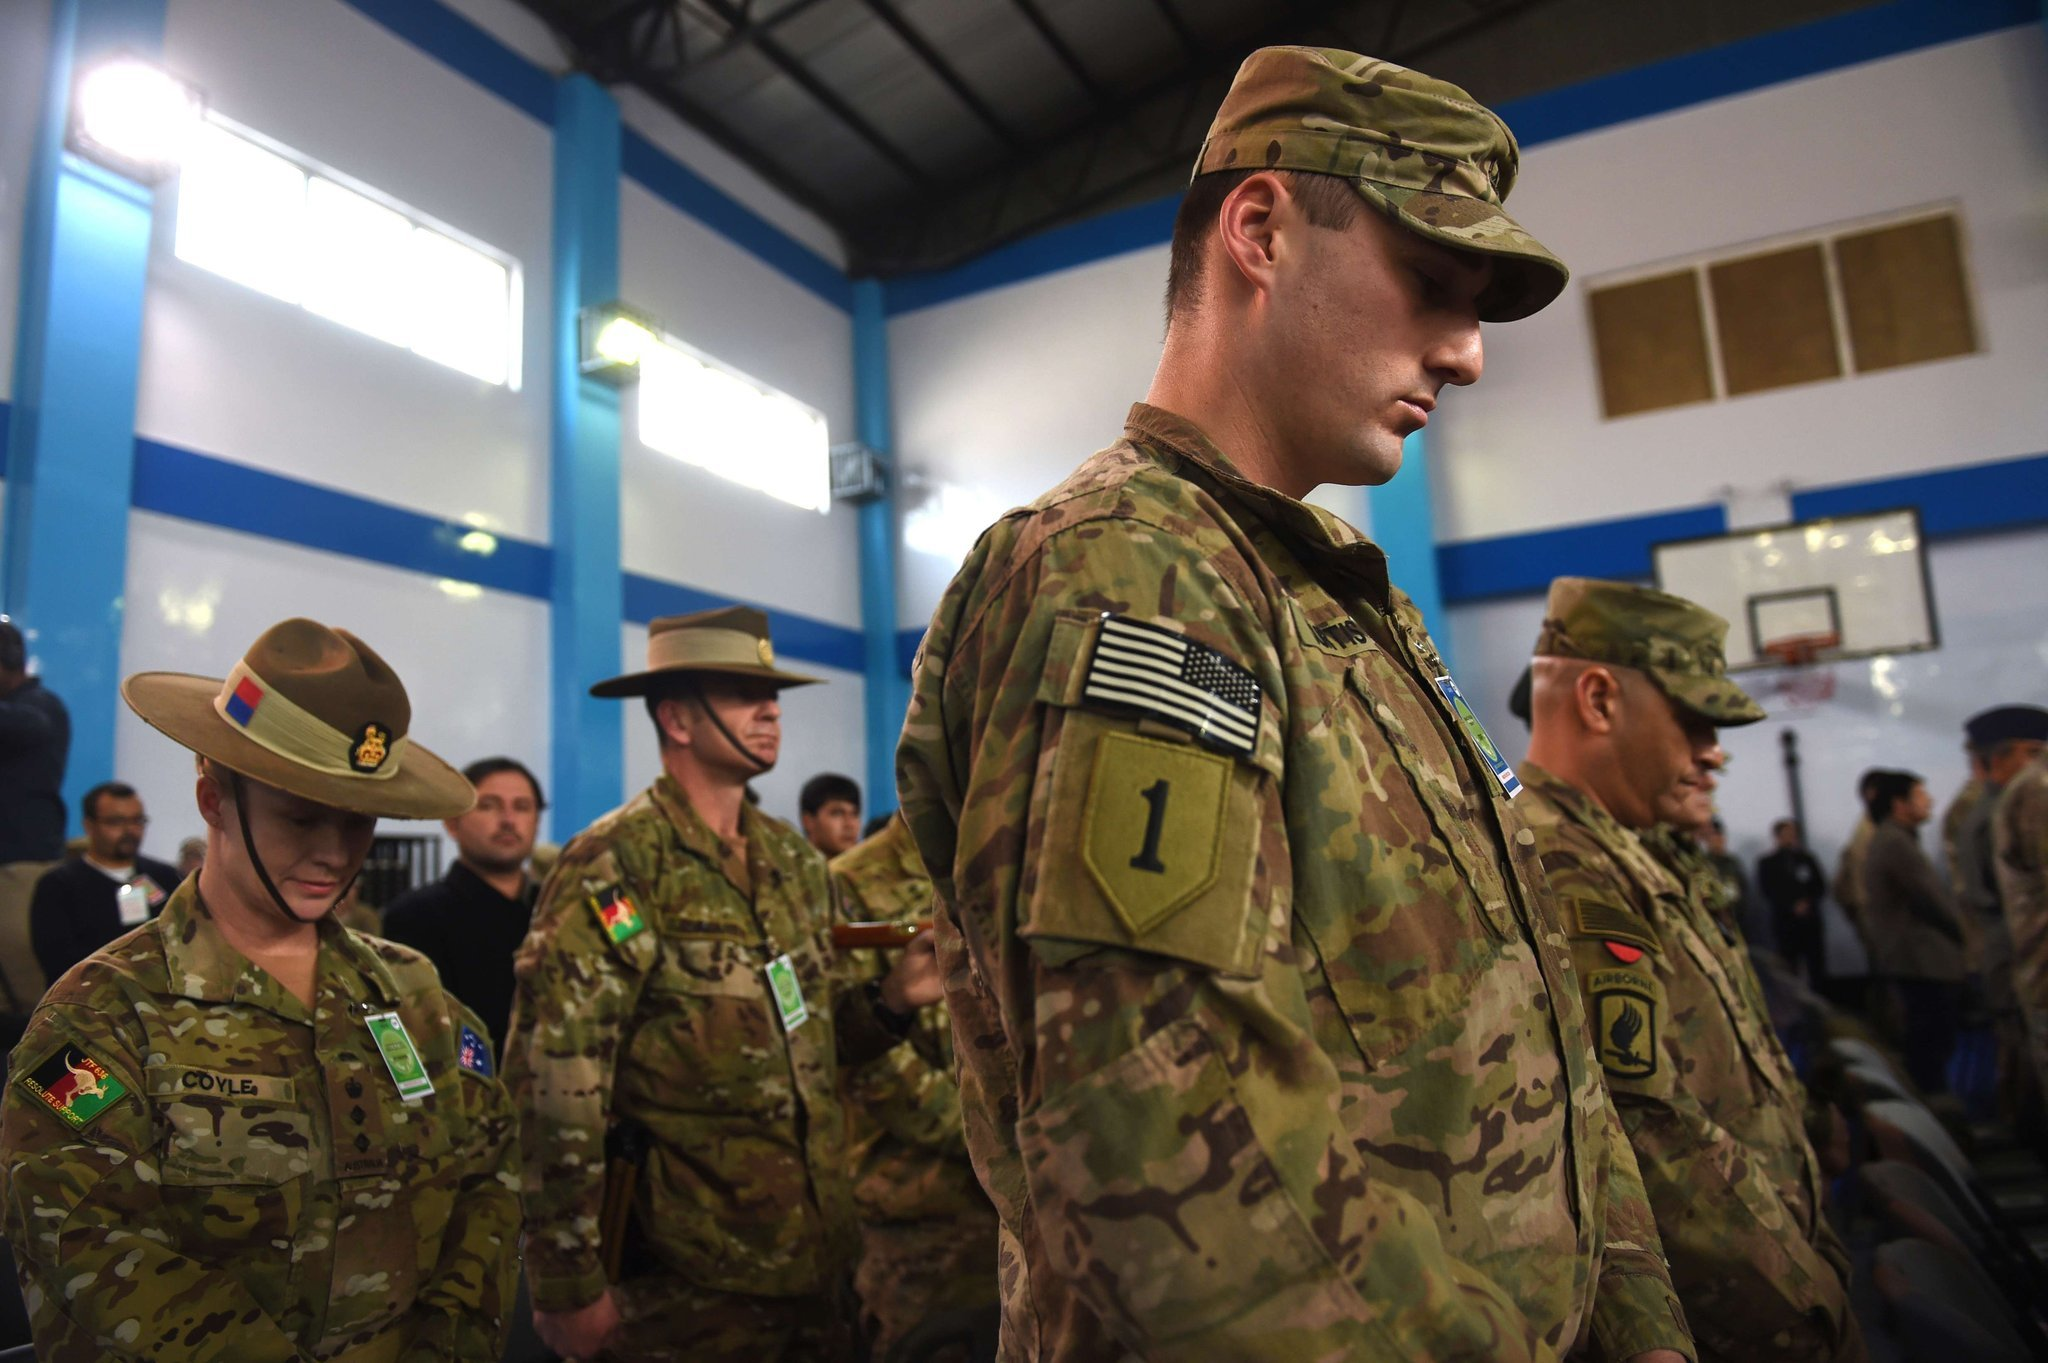 U.S.-led mission in Afghanistan ends combat role